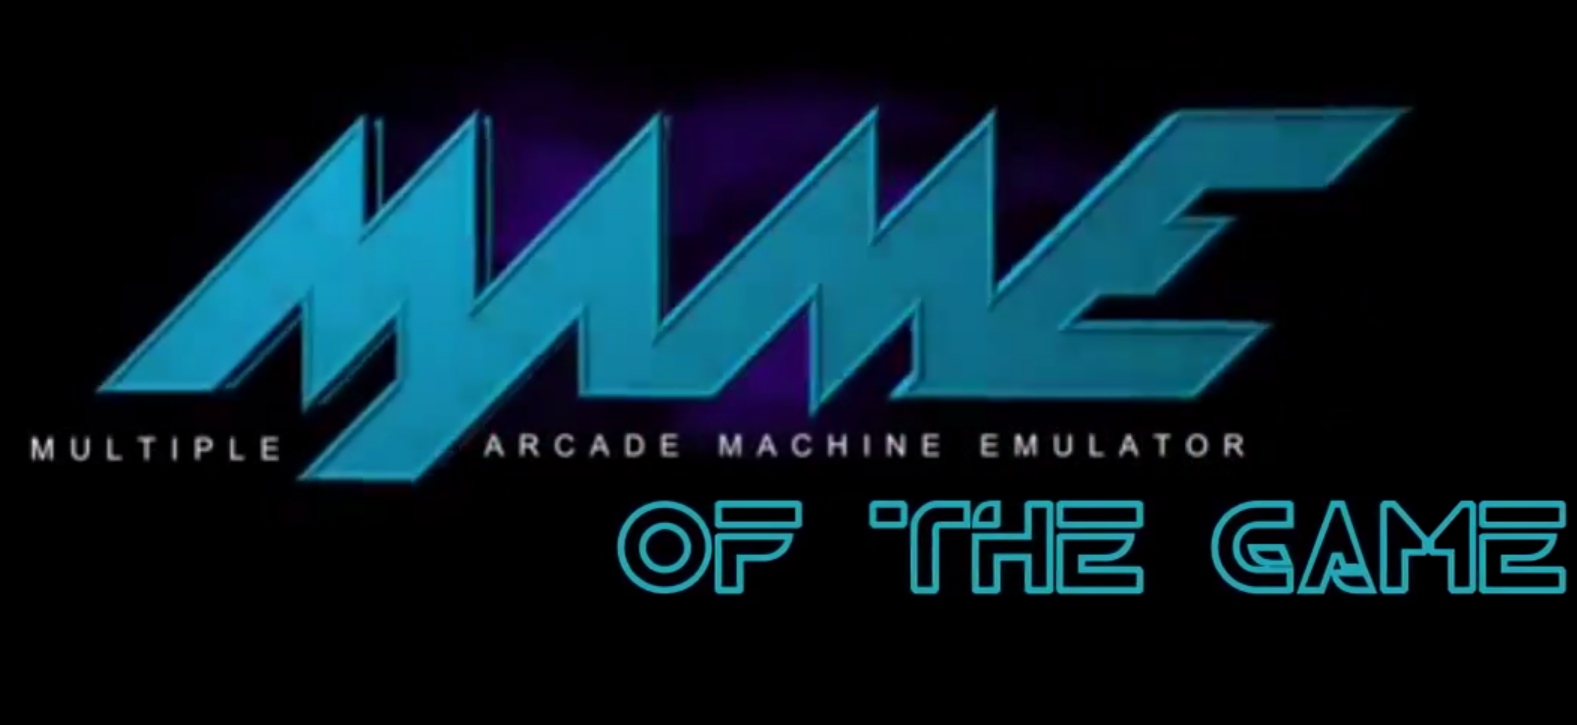 mame of the game